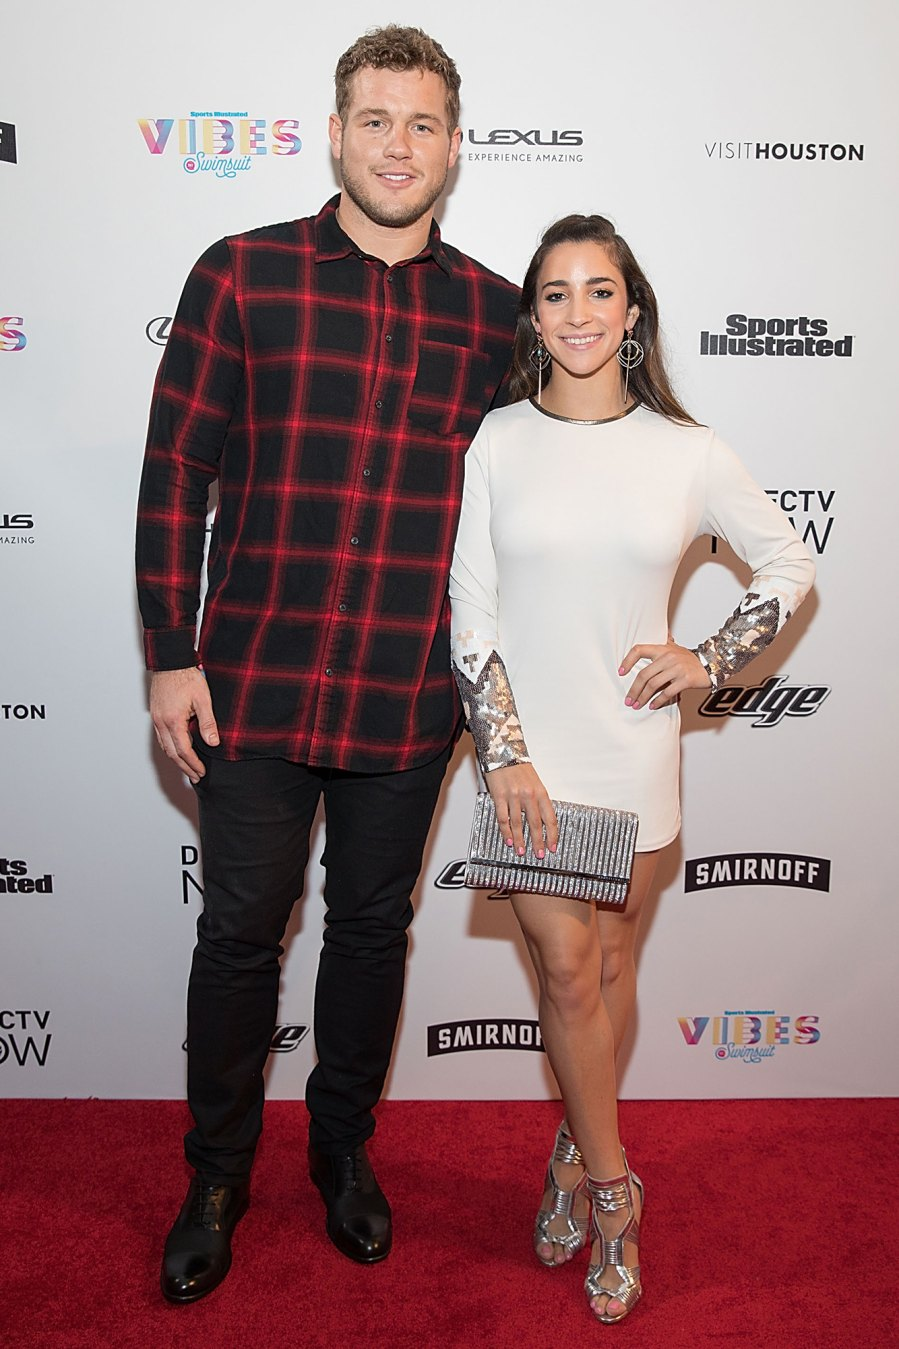 Stars Who Have Dated Bachelor Nation Colton Underwood and Aly Raisman